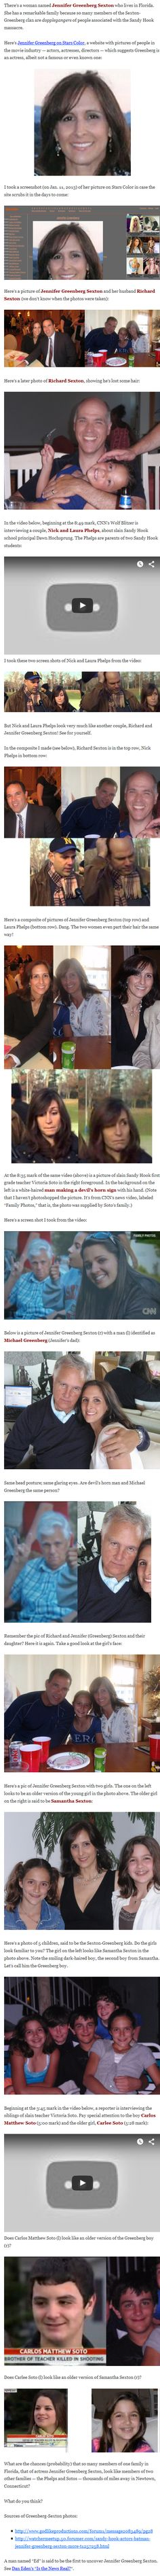 Remarkable resemblance of Sandy Hook victims and professional crisis actors